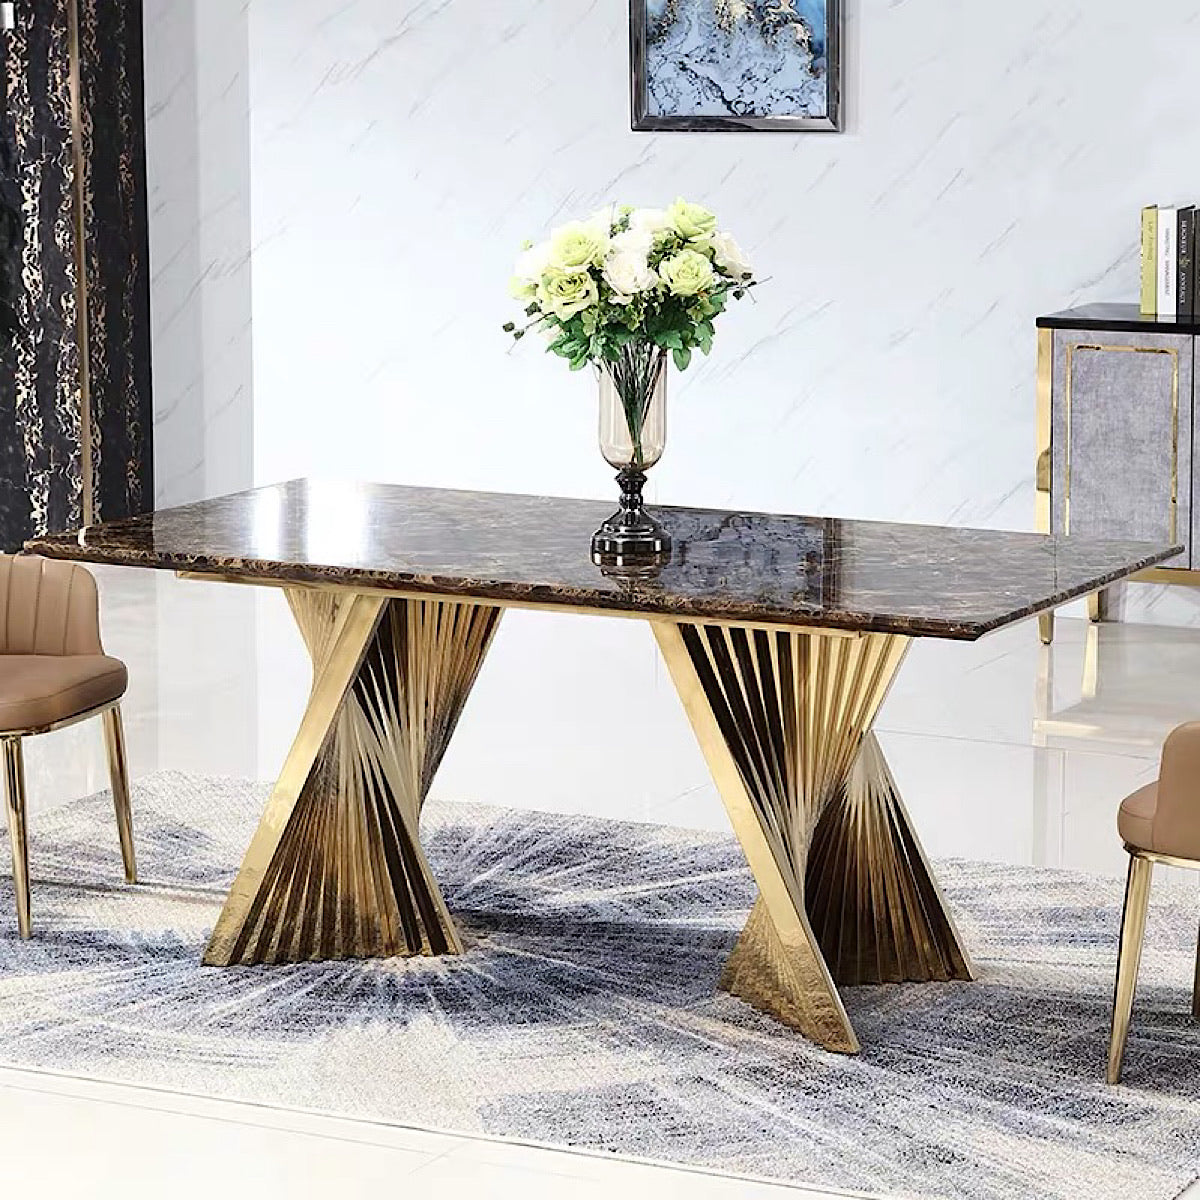 Morde Marble Table - mhomefurniture